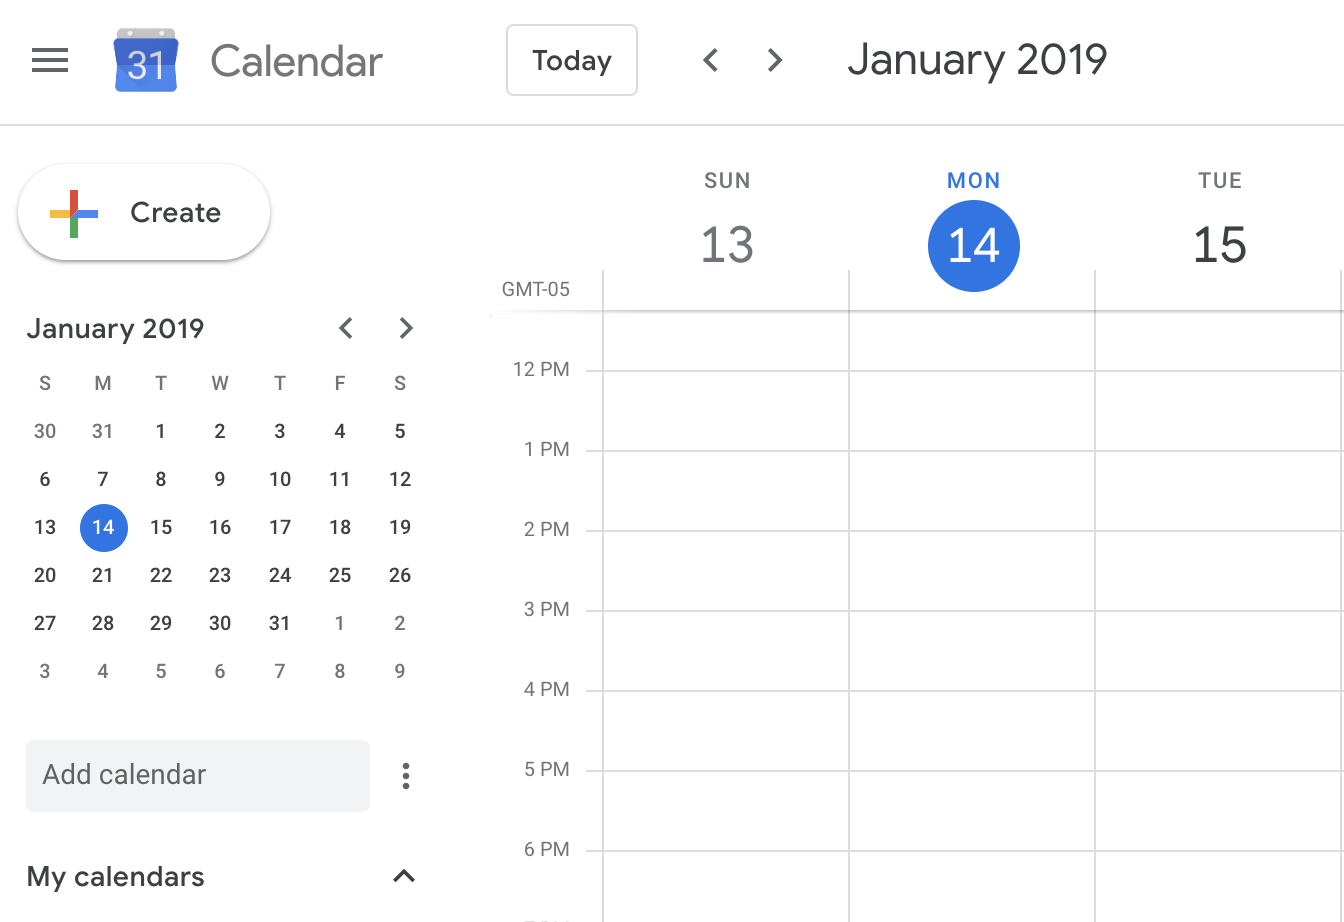 Google calendar settings permit access to student information